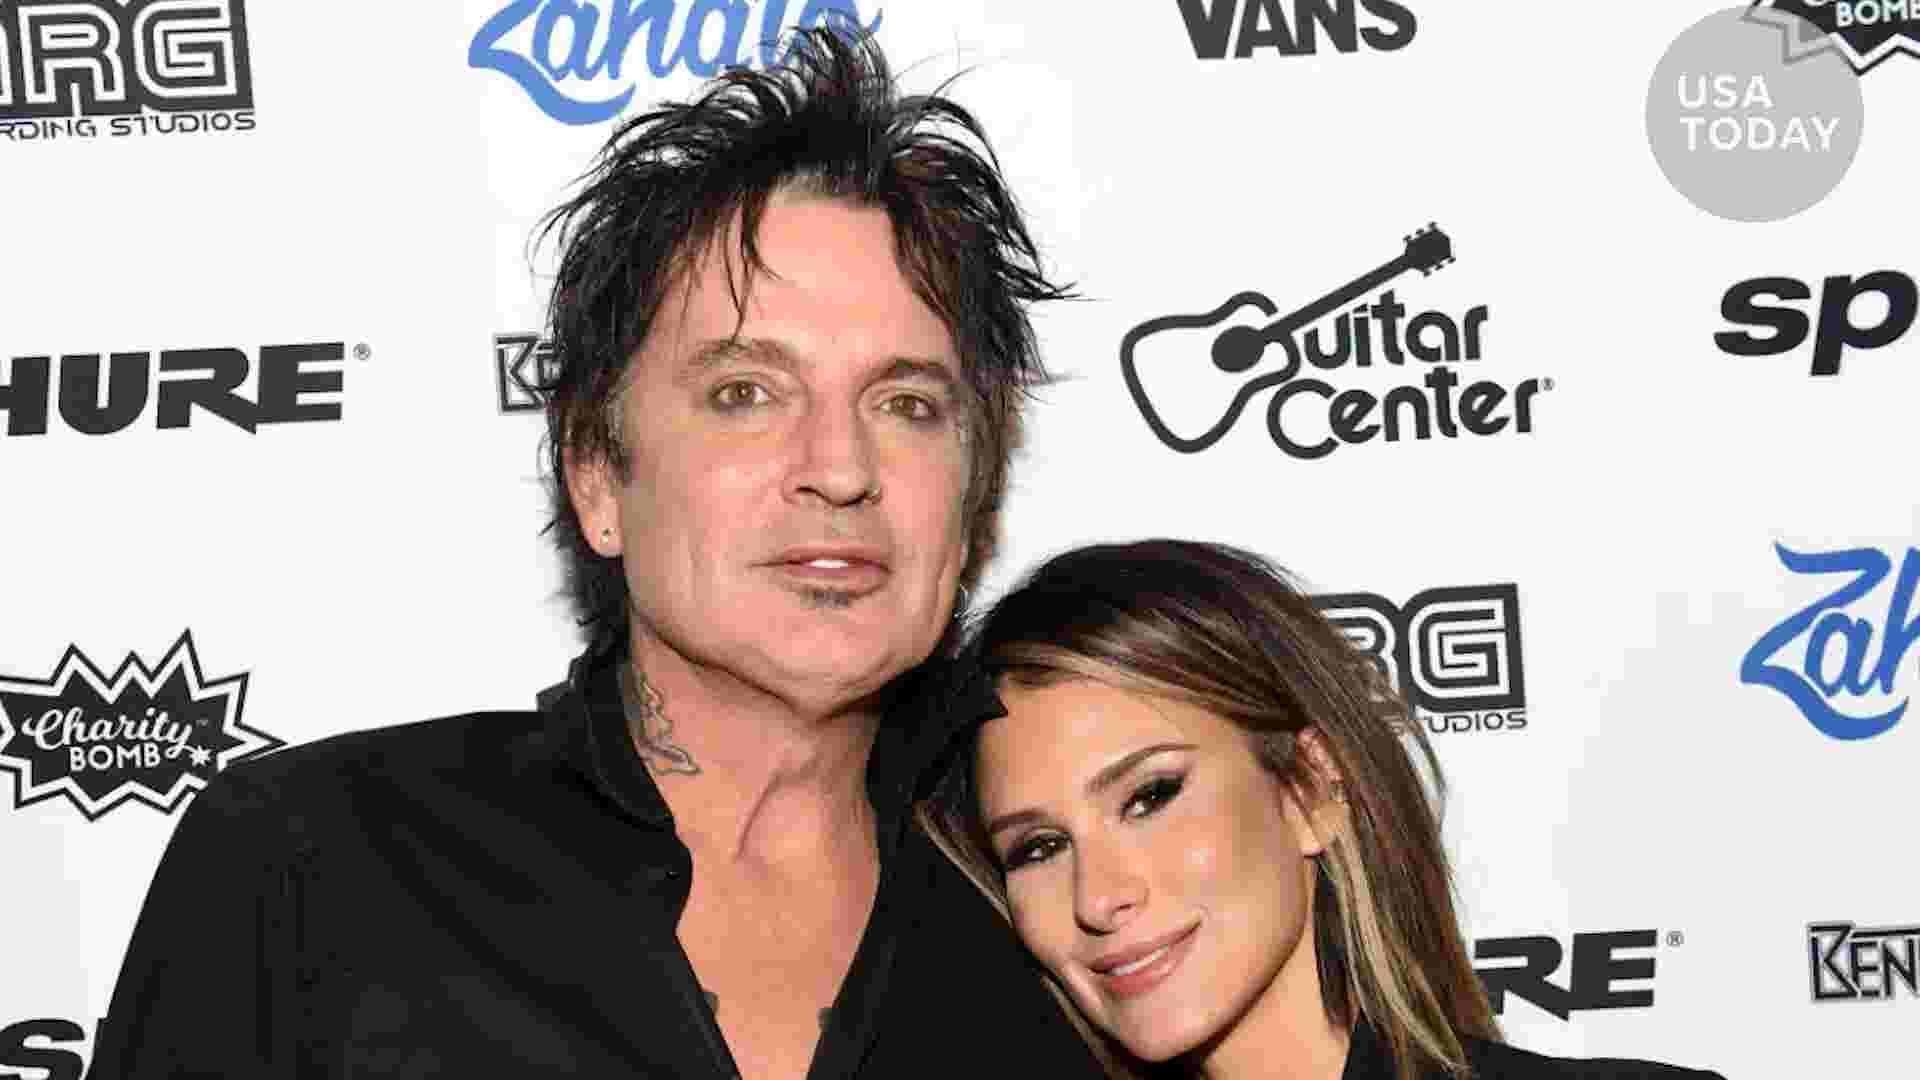 Tommy Lee married on Valentine's Day